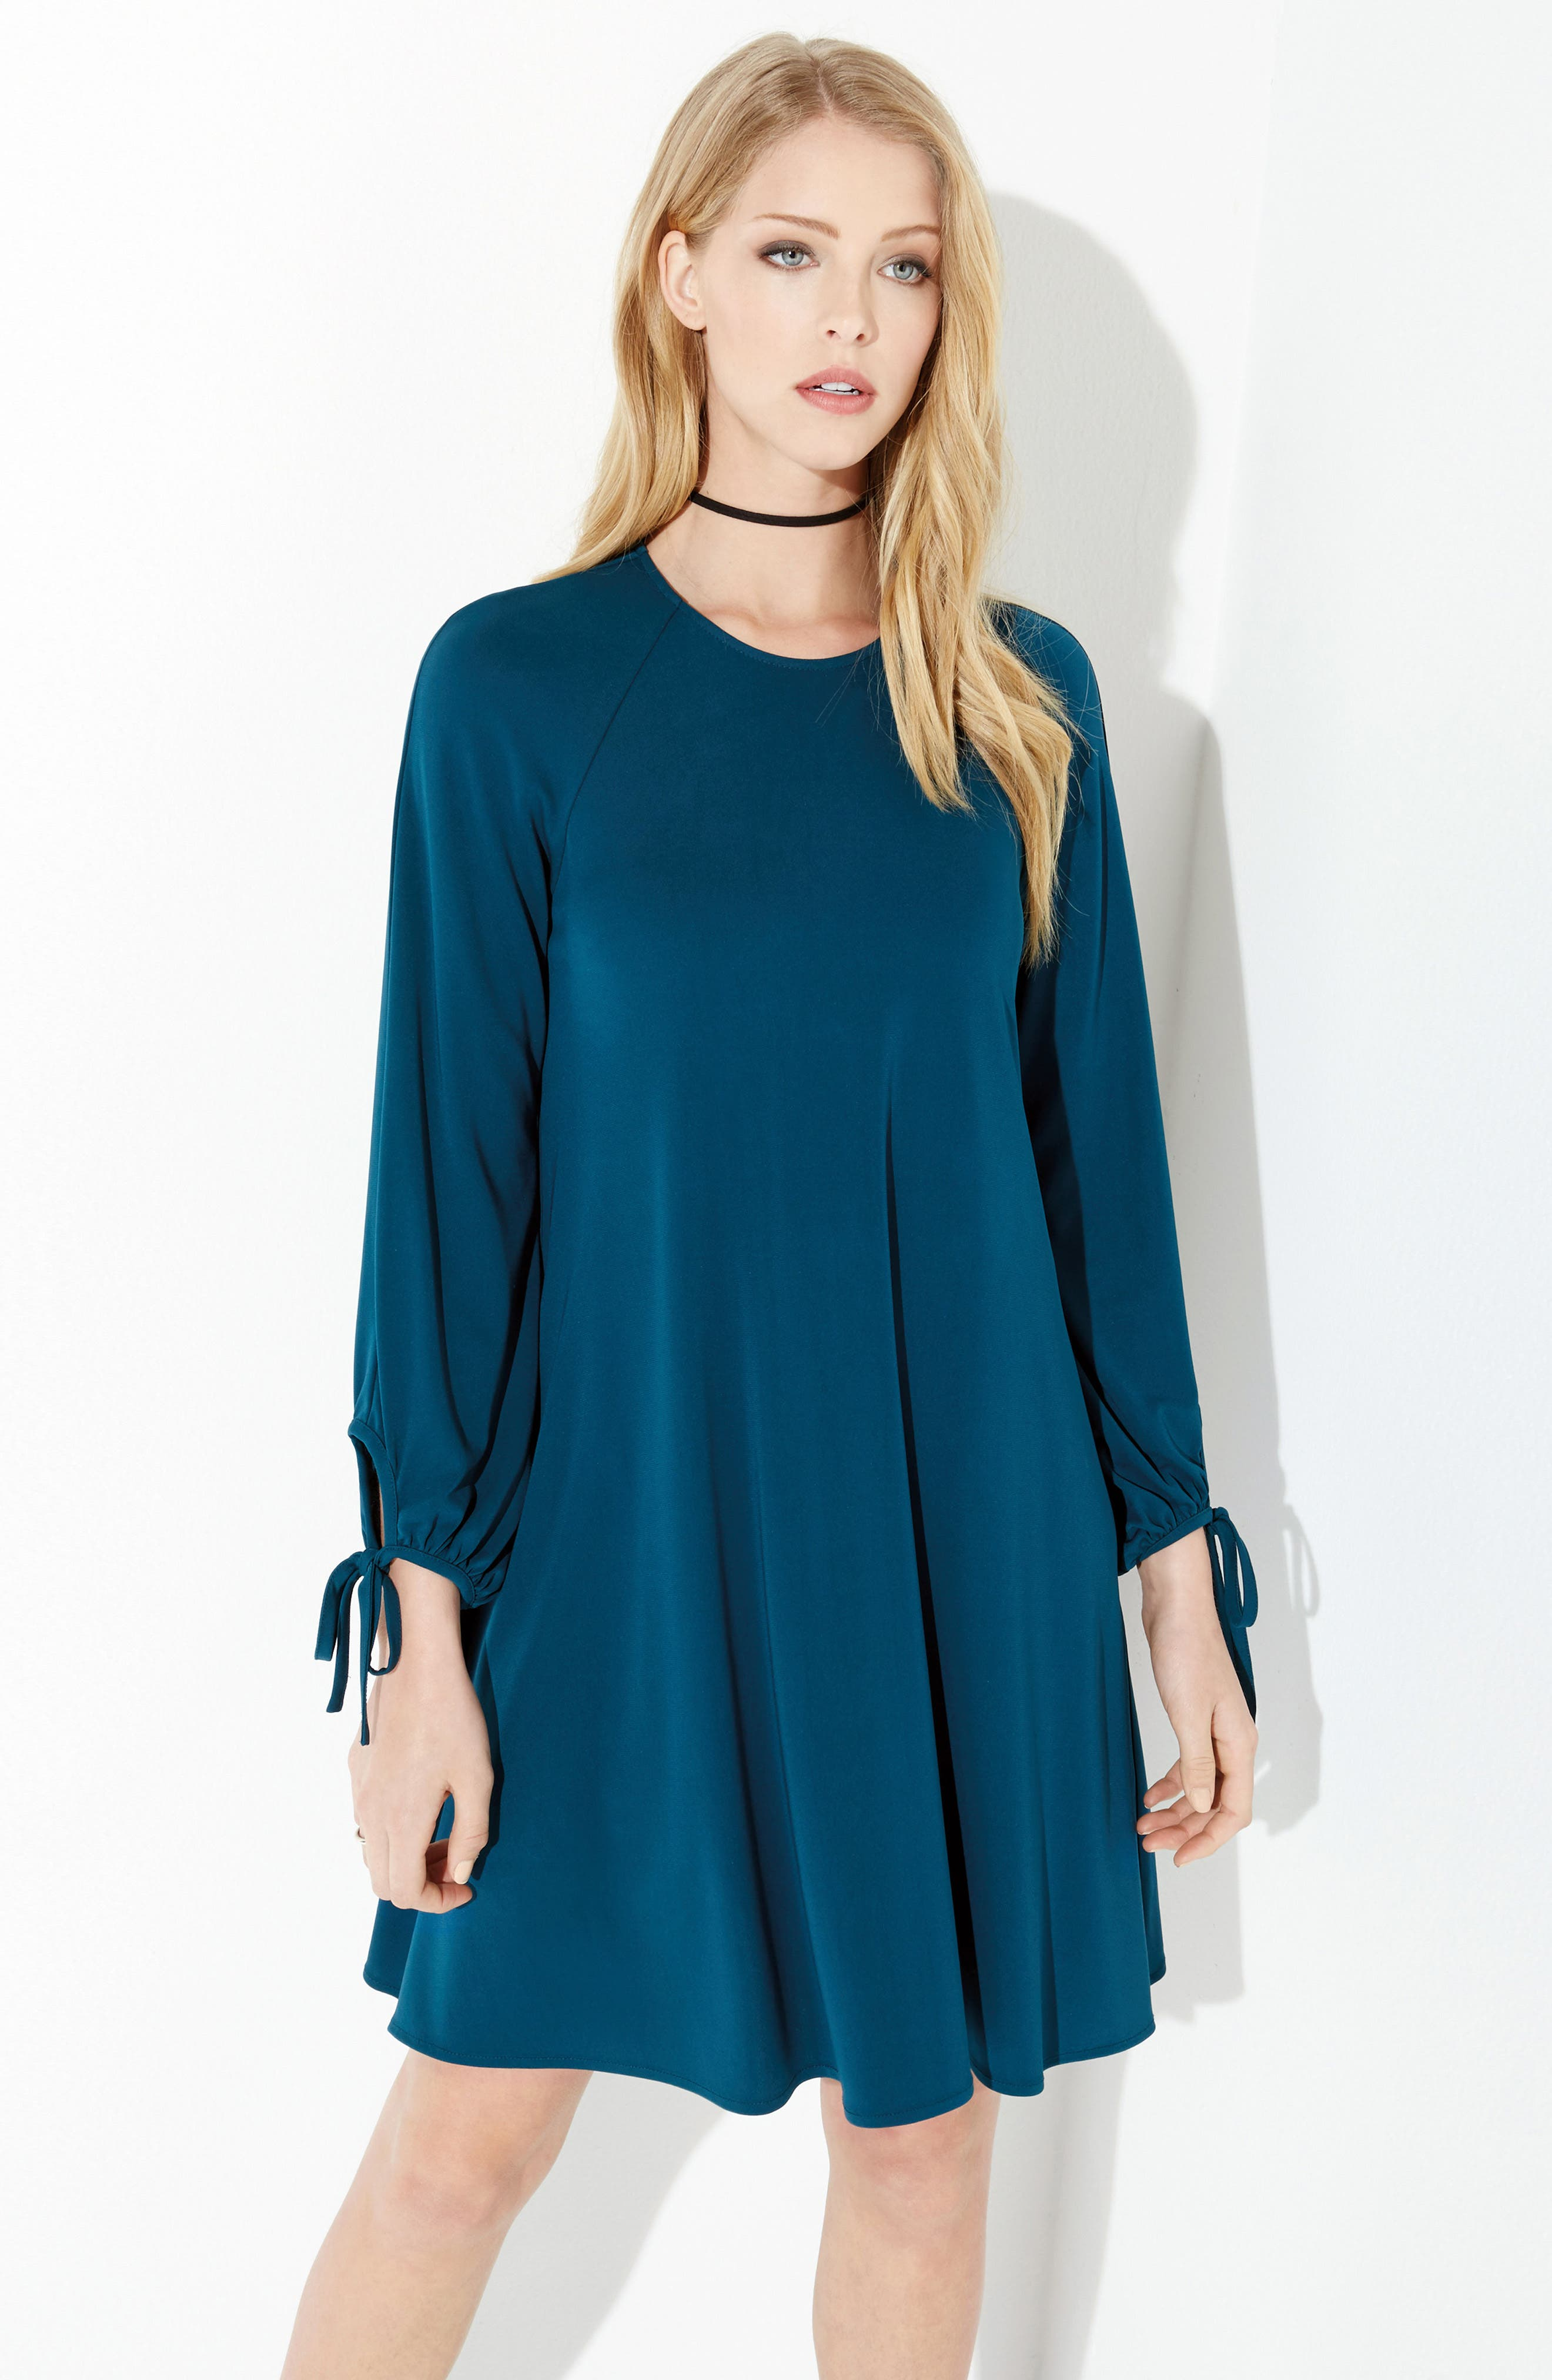 Tie Sleeve Shift Dress,                             Alternate thumbnail 2, color,                             Teal